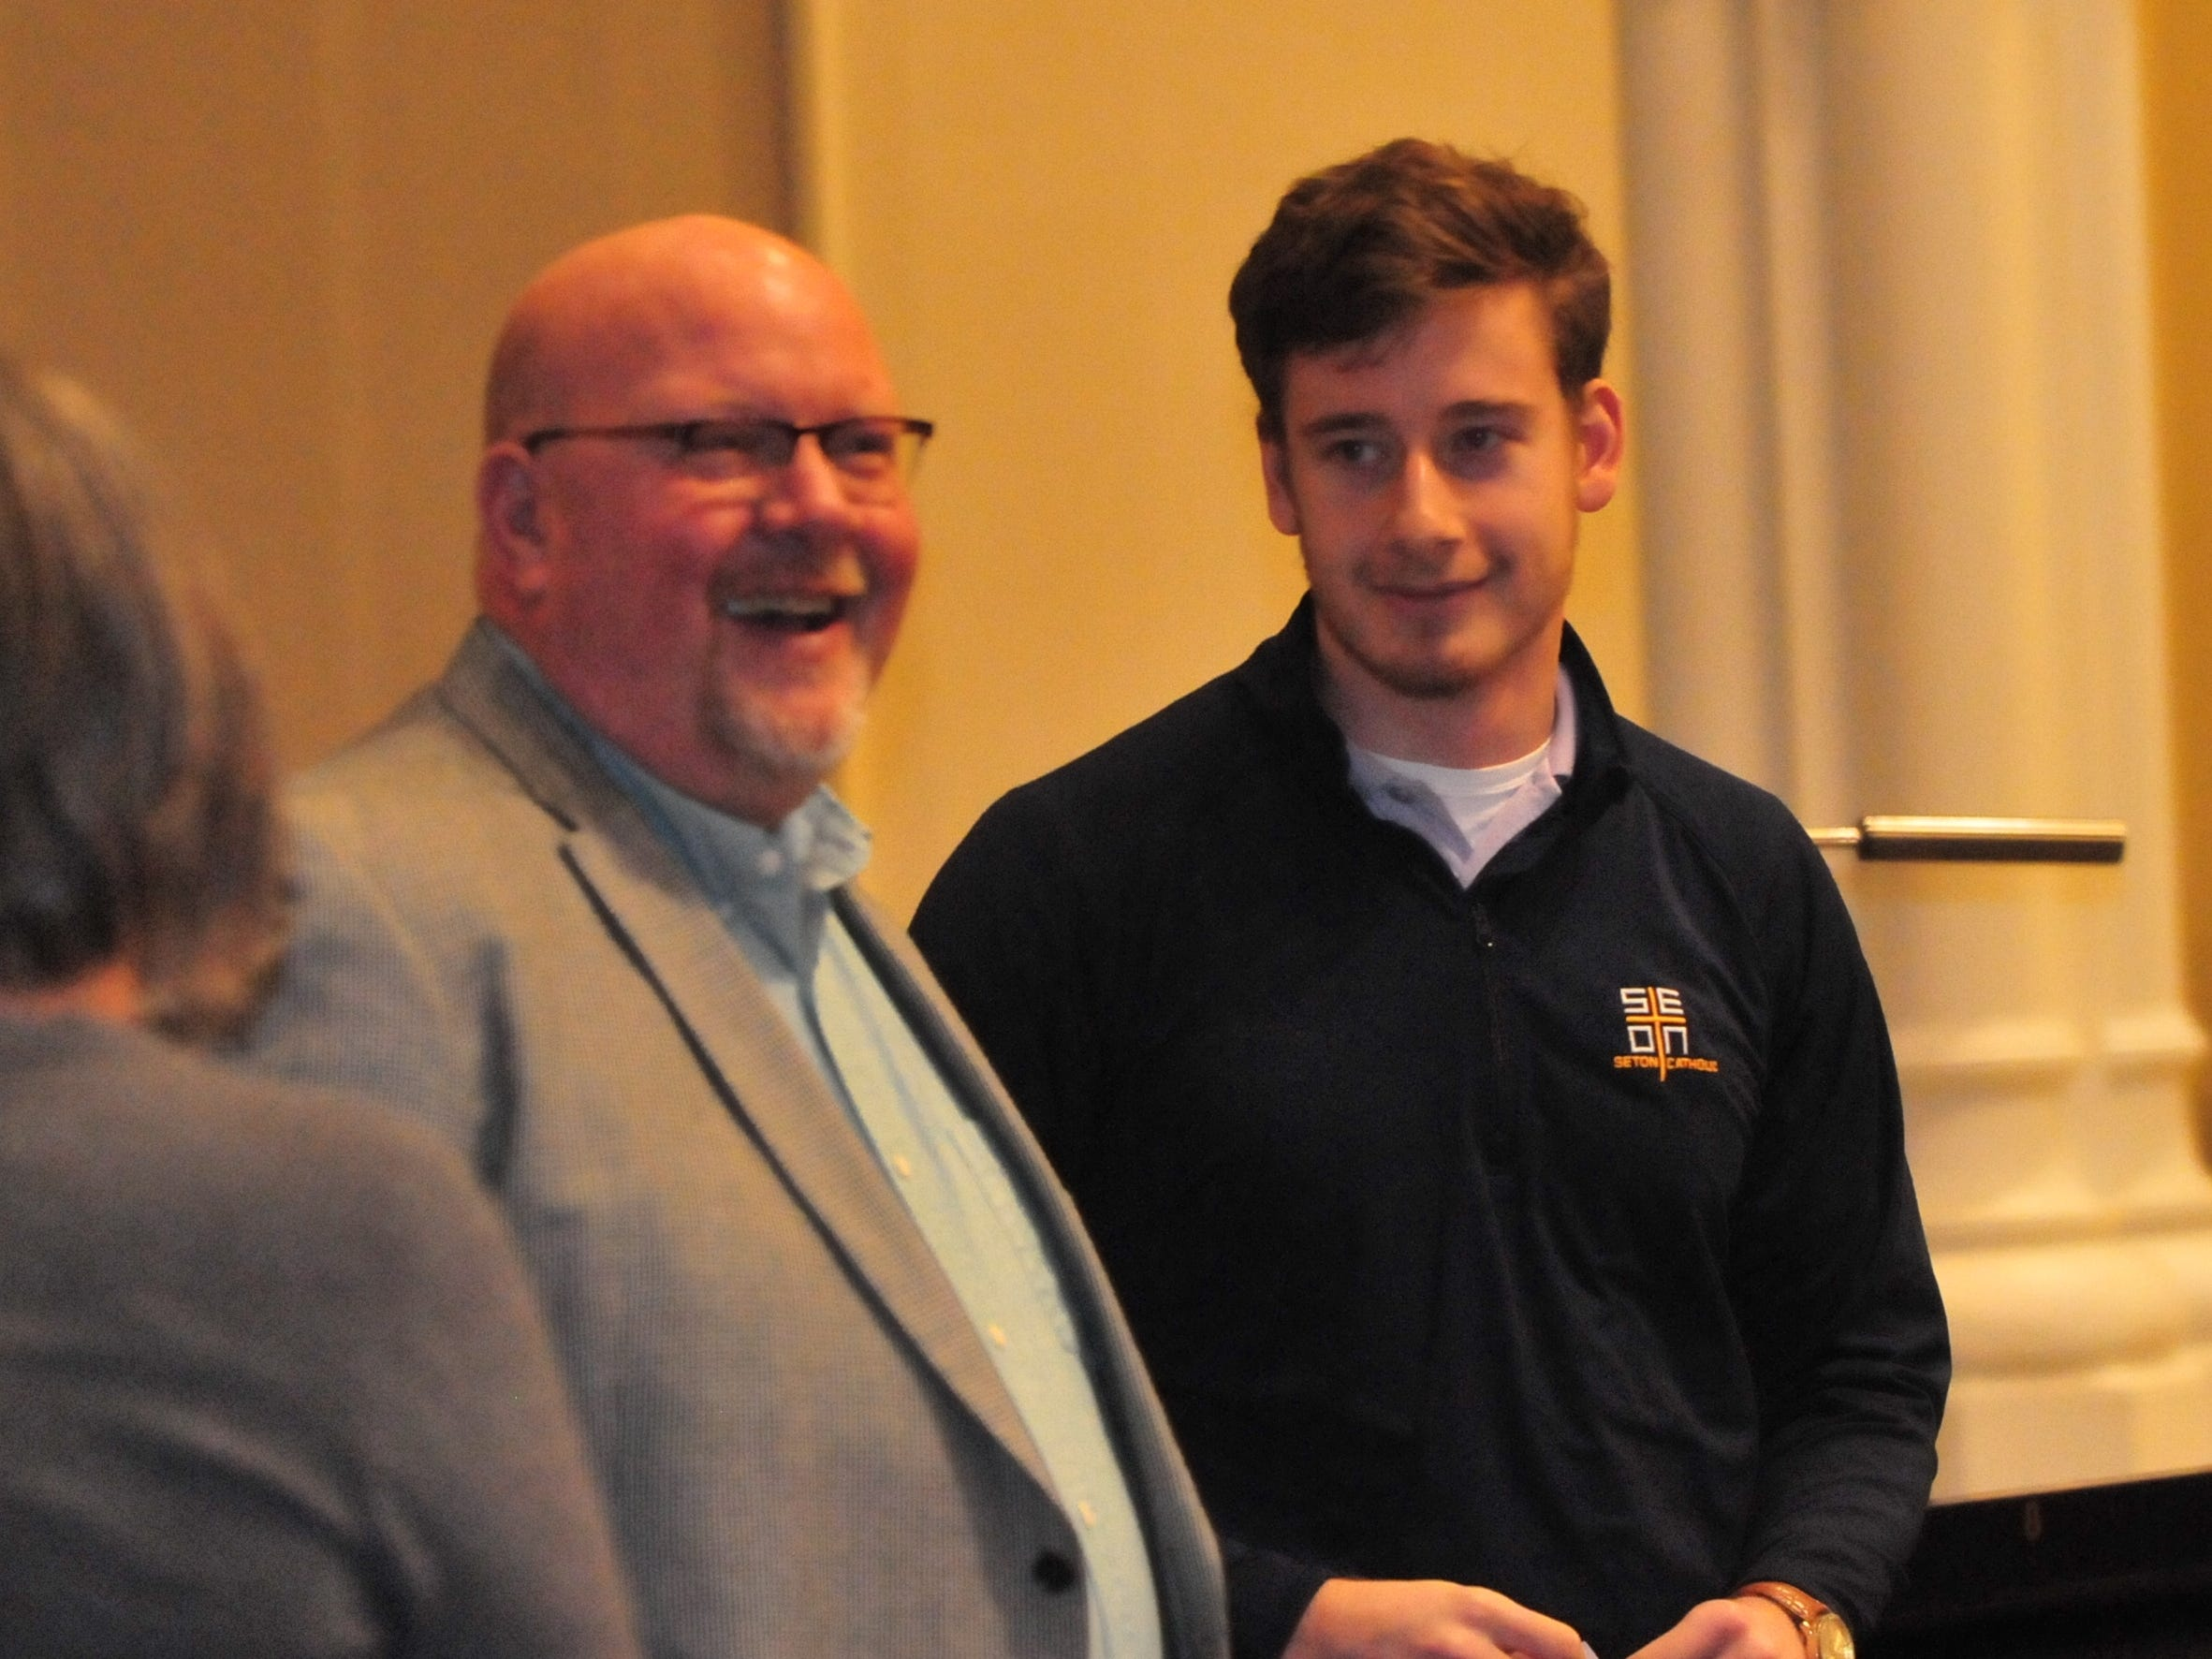 Seton Catholic senior Joseph Lahmann, right, with his father Patrick after finding out he won the Lilly Endowment Community Scholarship after morning mass at St. Andrew's Catholic Church in Richmond Tuesday, Dec. 11, 2018.